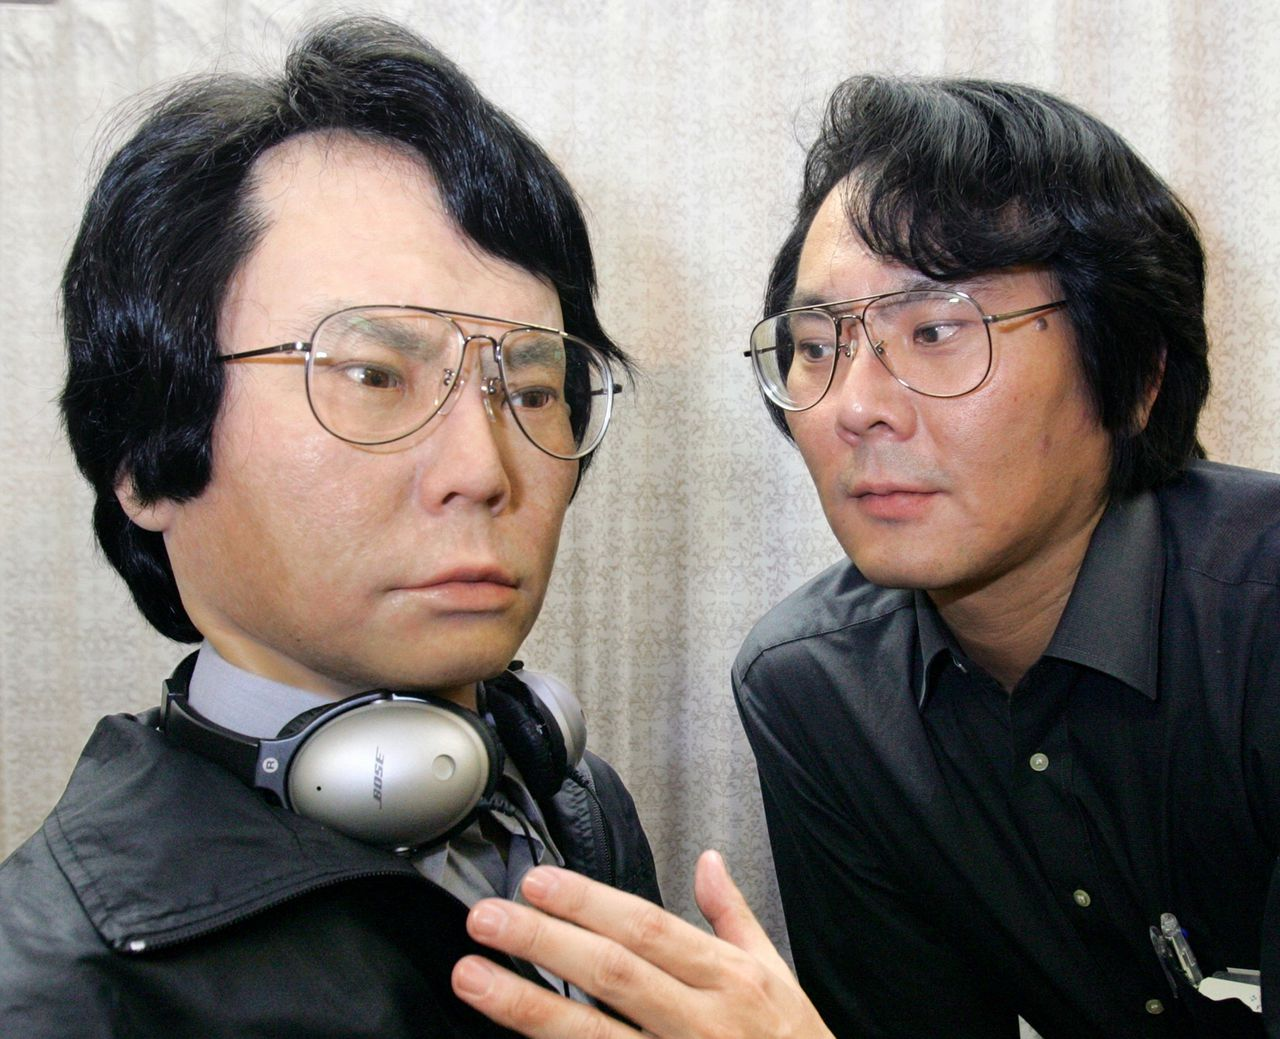 De Japanse robotwetenschapper Hiroshi Ishiguro ontwierp een kopie van zichzelf, juli 2006 (kosten: 258.000 dollar). Foto AP Prof. Hiroshi Ishiguro, right, of Osaka University looks at an android robot that looks exactly like him in Kyoto, western Japan, on Thursday July 20, 2006. The robot, which cost about 30 million yen (US$258,000) to develop, is remote-controlled to speak and can wear carbon copy expressions of Ishiguro. The robot Ishiguro, its face covered with silicone rubber, stands at 175 centimeters, the height of the professor, who completed the robot based on a real person to collect basic data for a future robot which can communicate with the human beings. (AP Photo/Asahi Shimbun, Hiroyuki Yamamoto) ** JAPAN OUT NO SALES ONLINE OUT MANDATORY CREDIT **